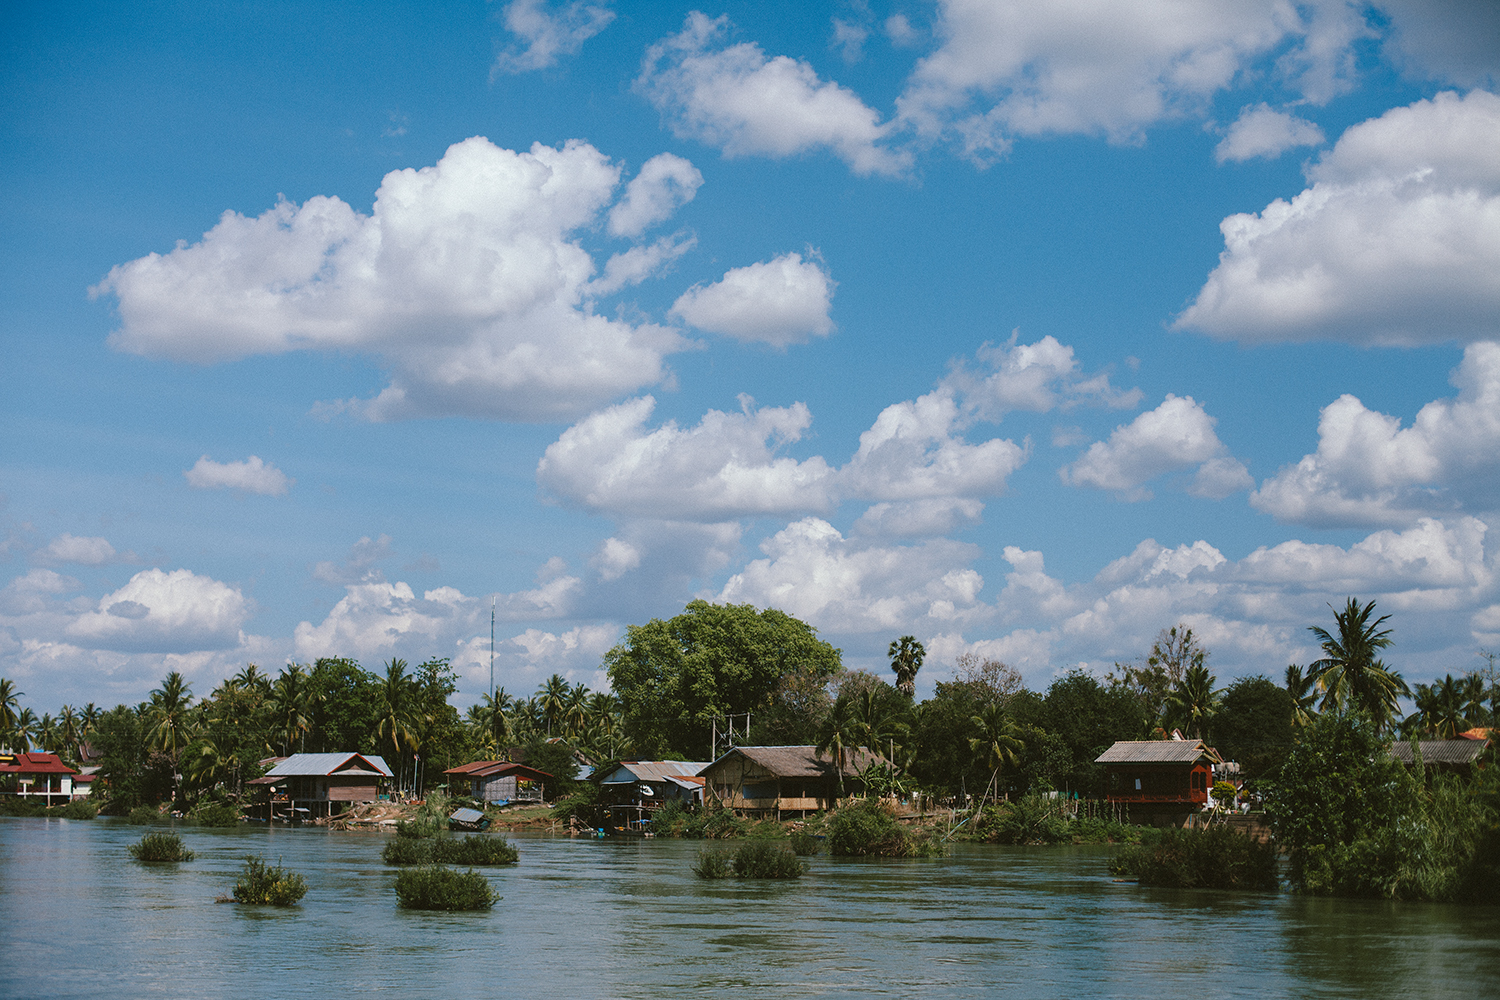 10. Don Det, Laos - Cycling around the island on the little dirt tracks.Swimming in the Mekong River alongside the local buffalos.Stunning sunset views every evening from the little beach.